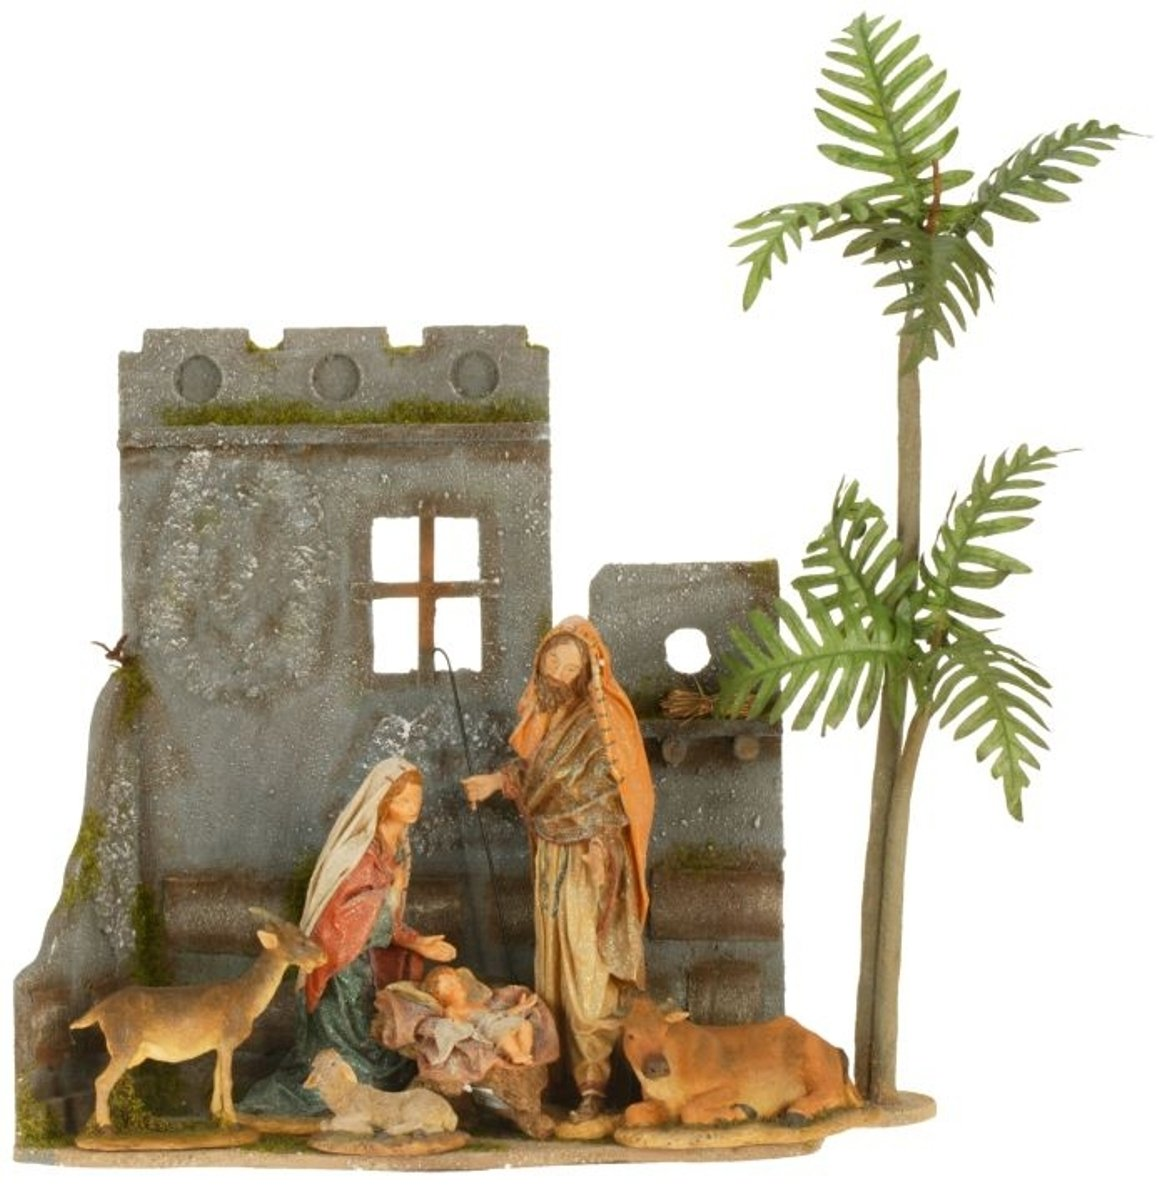 Holy Family and Animals 6 Piece Resin Nativity Scene with 19.25 Inch Creche and Palm Tree Mark Roberts